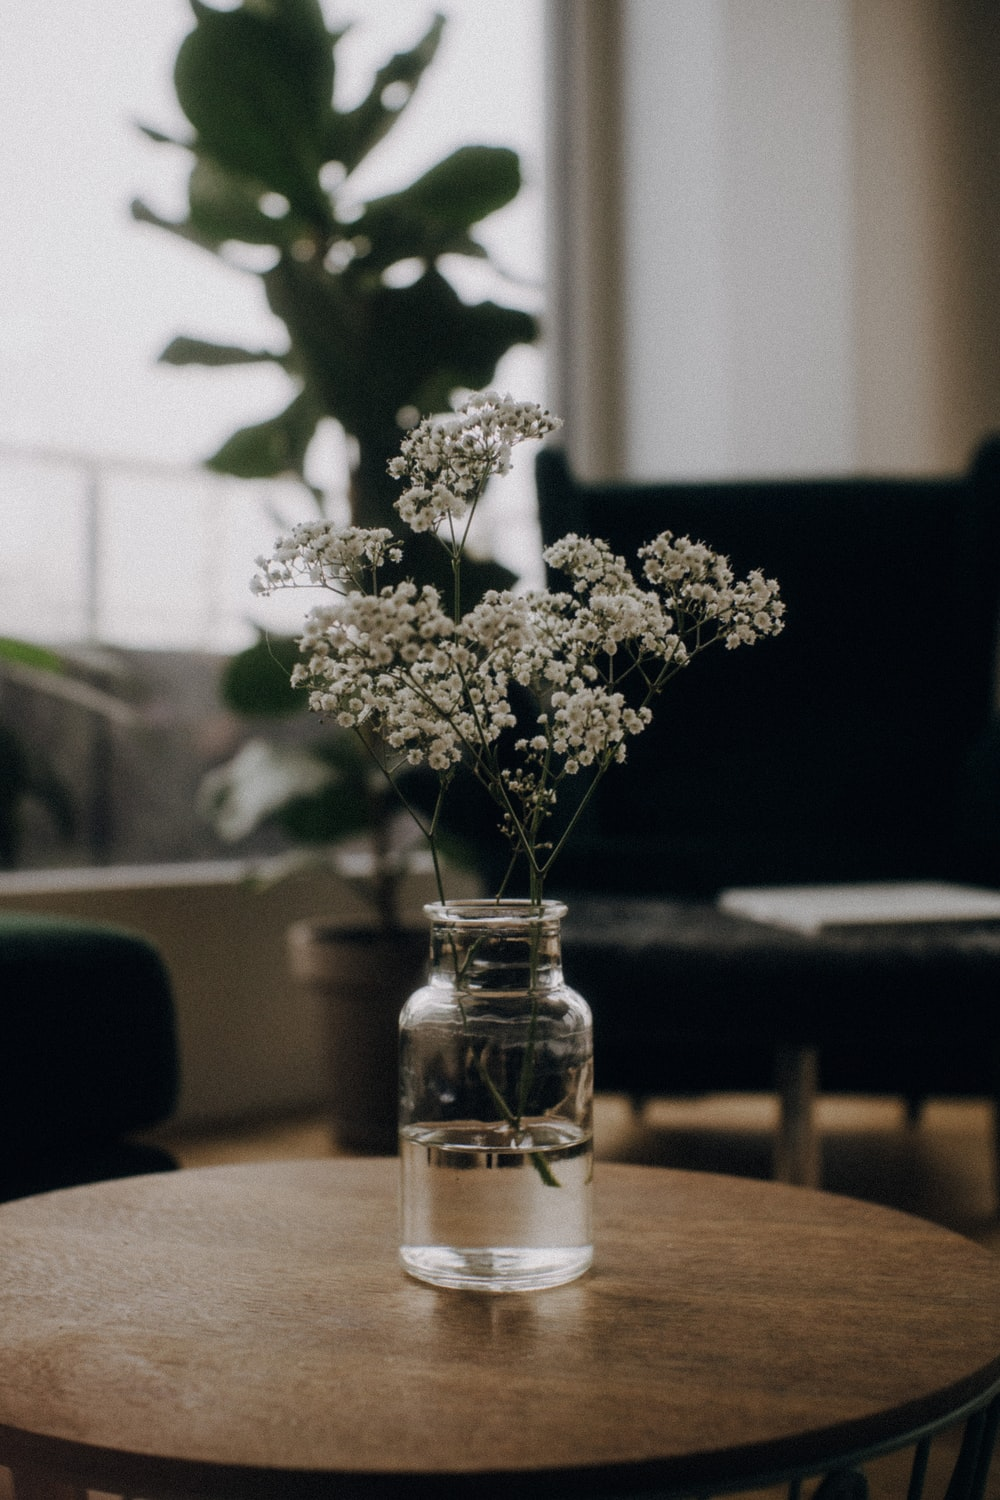 white flowers in clear glass jar on brown wooden table